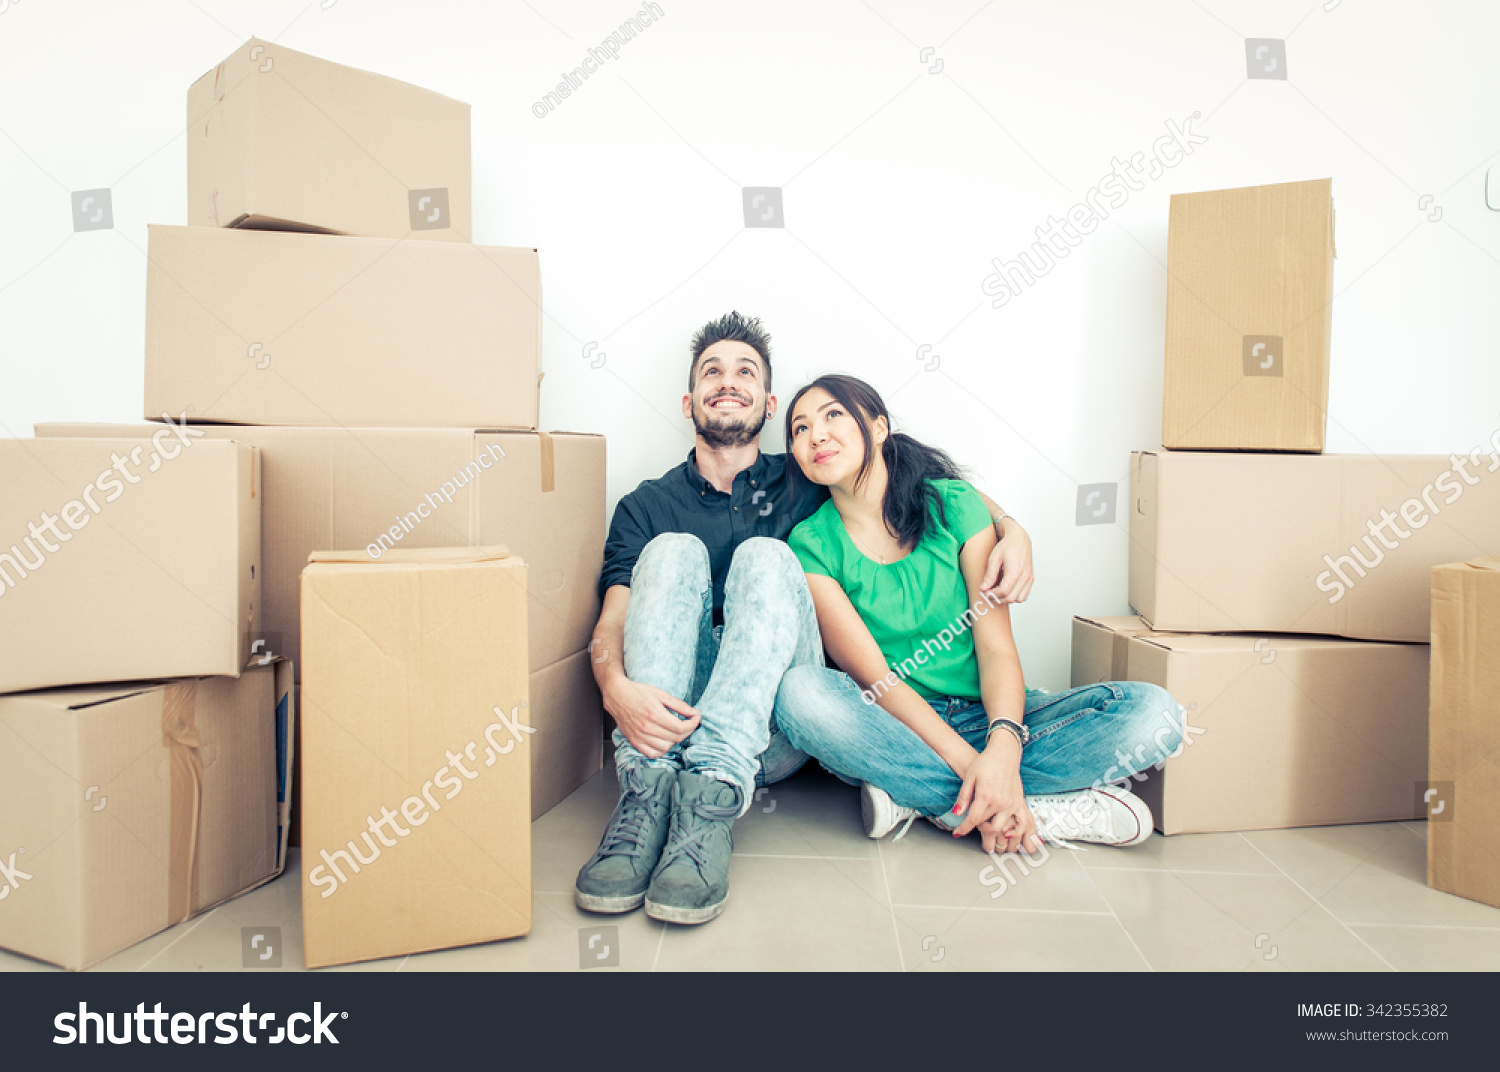 young couple moving into new apartment stock photo 342355382 shutterstock. Black Bedroom Furniture Sets. Home Design Ideas